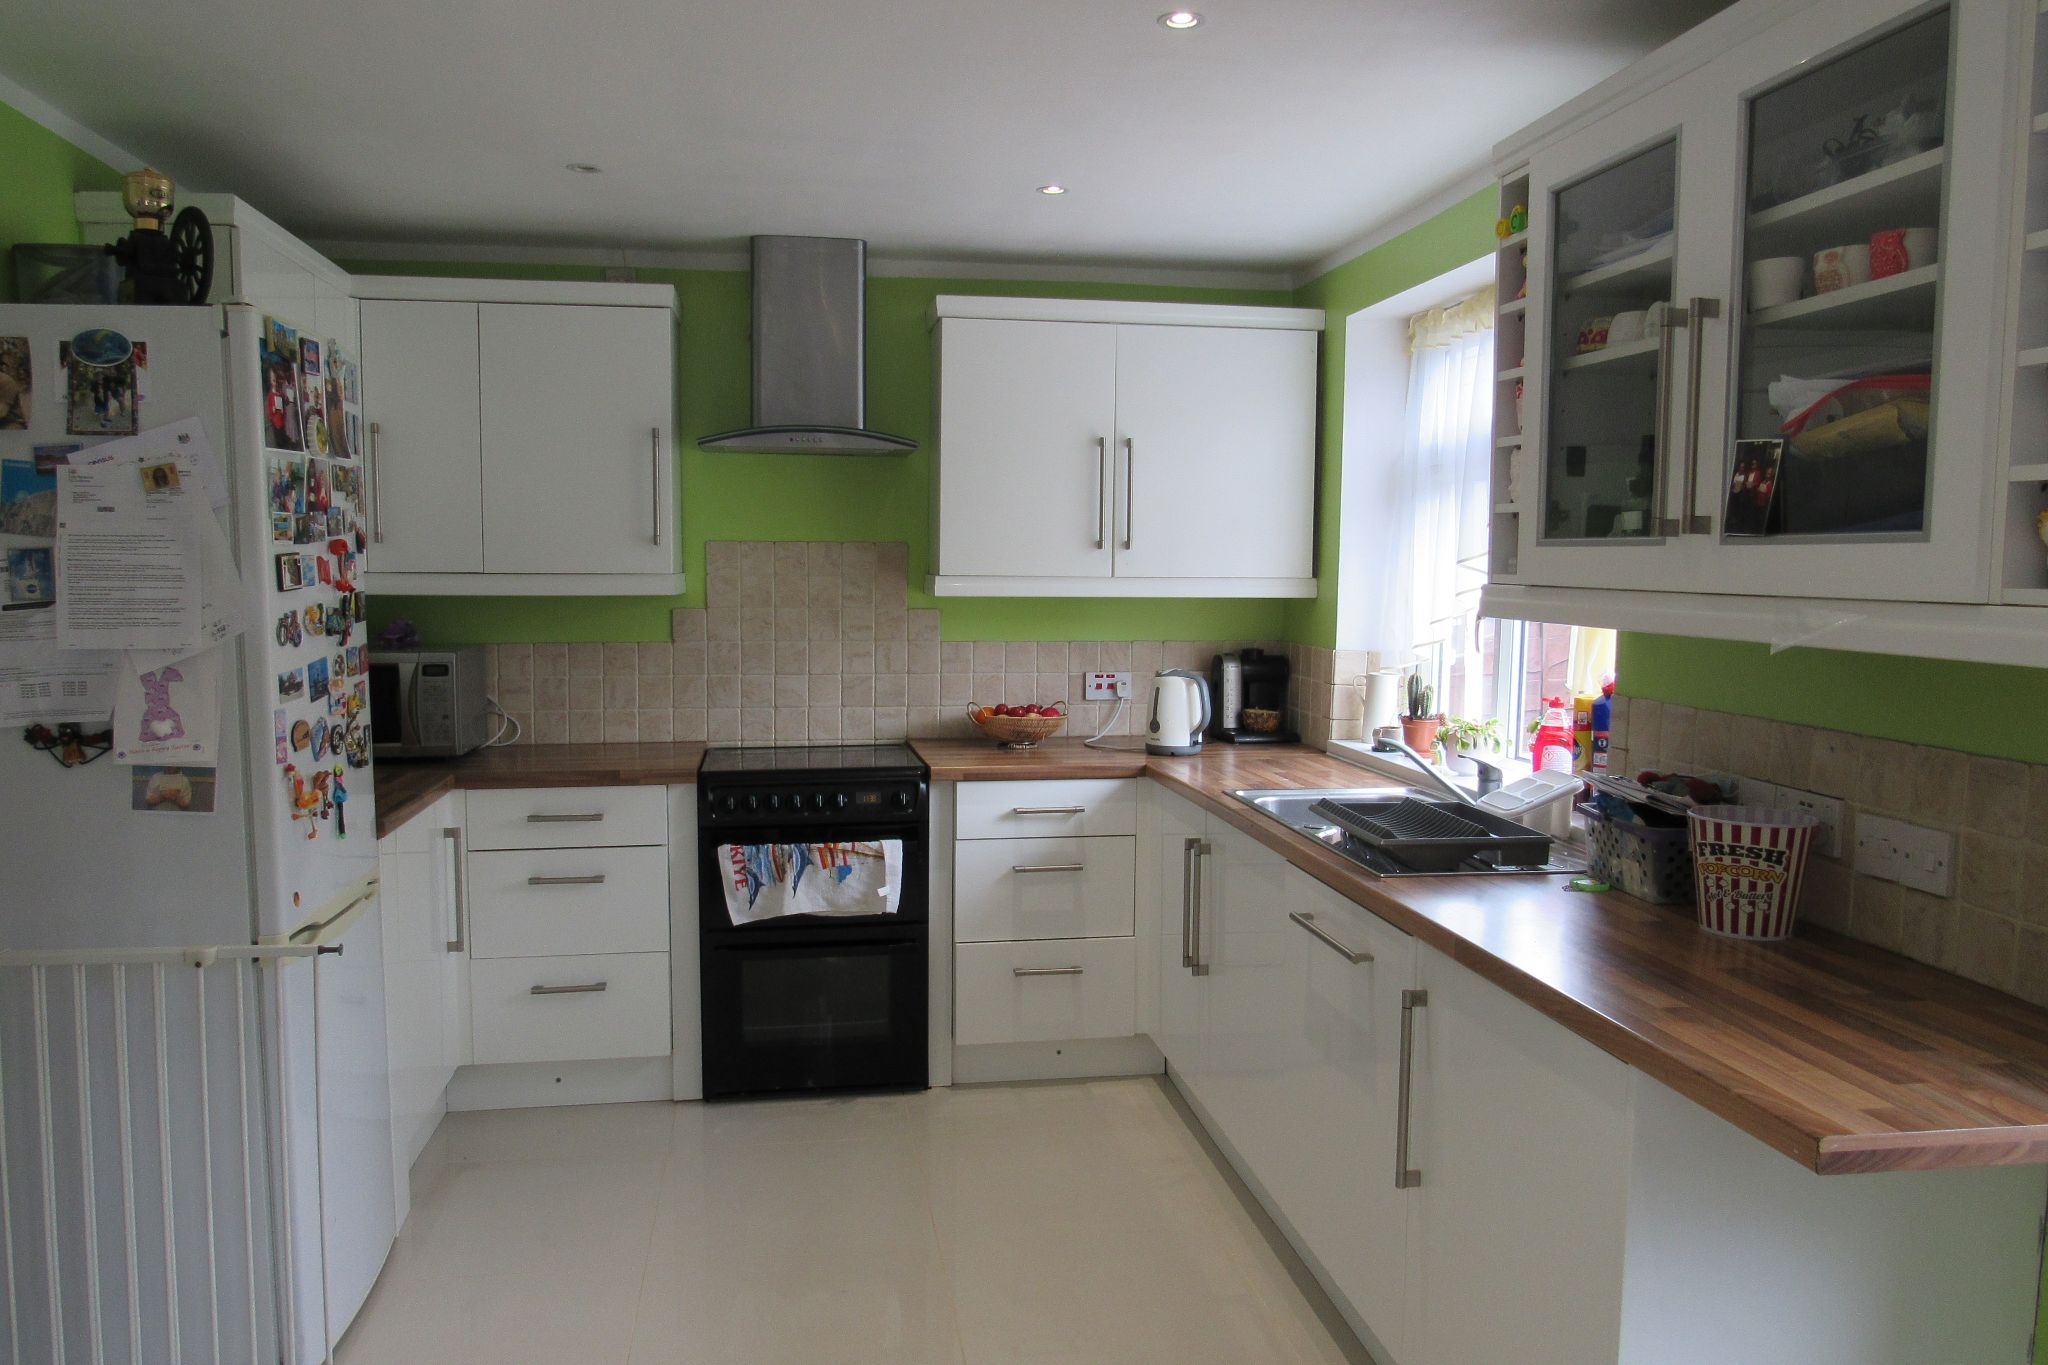 3 bedroom mid terraced house Sale Agreed in Manchester - Photograph 9.